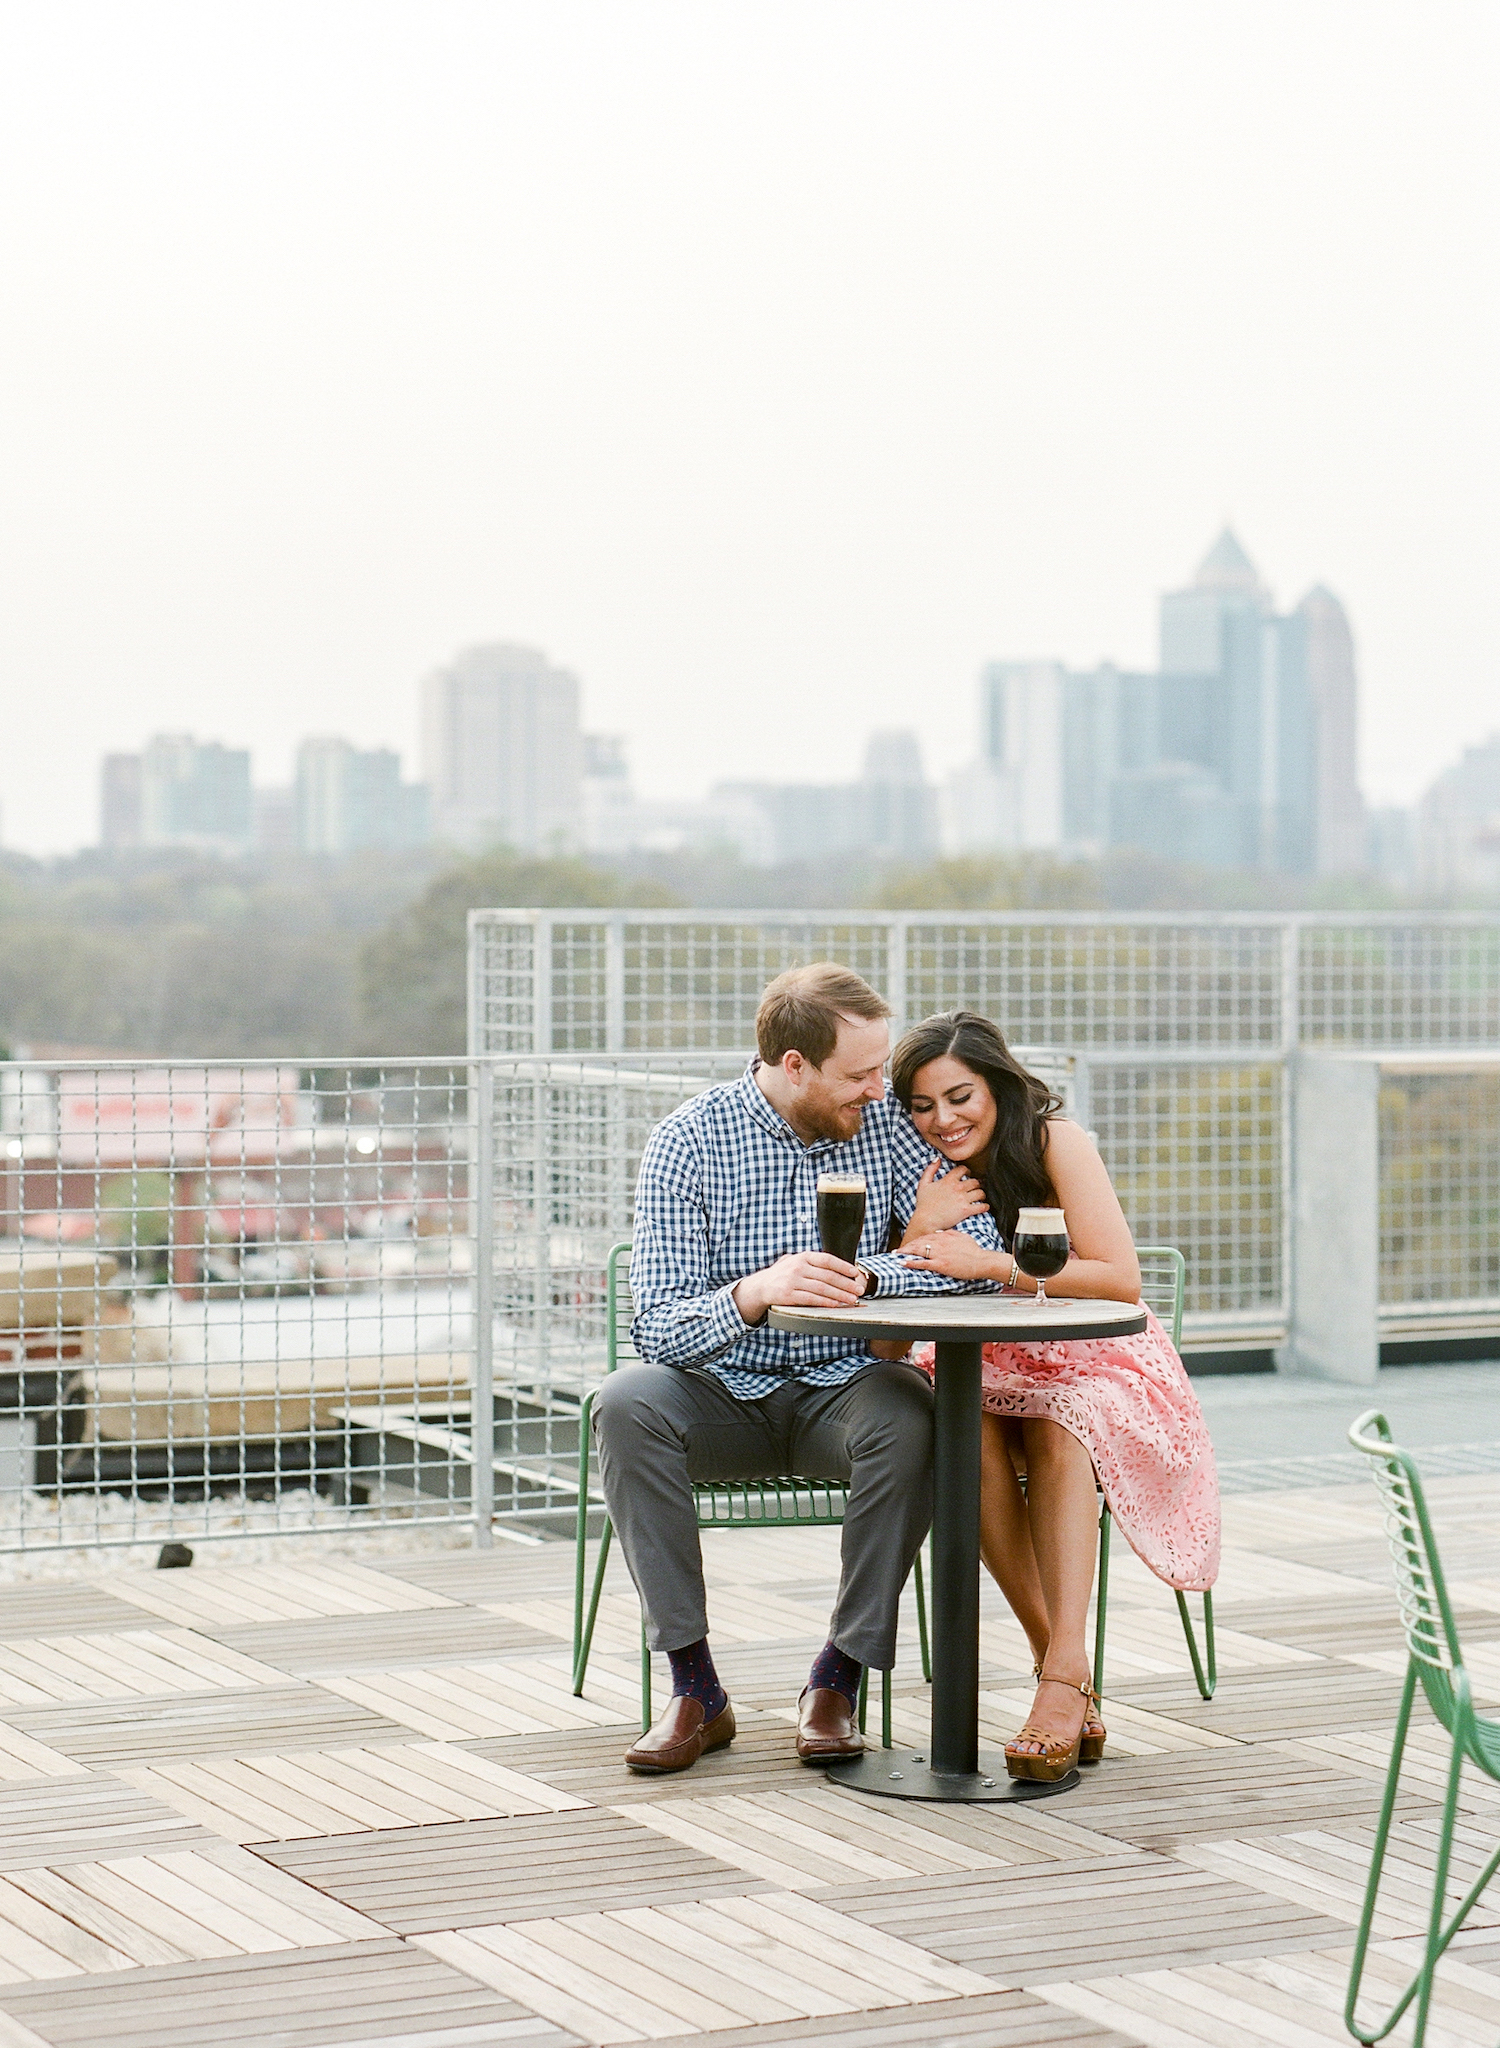 Beer Garden + Skyline Park Engagement Photos Atlanta - The Overwhelmed Bride Wedding Blog